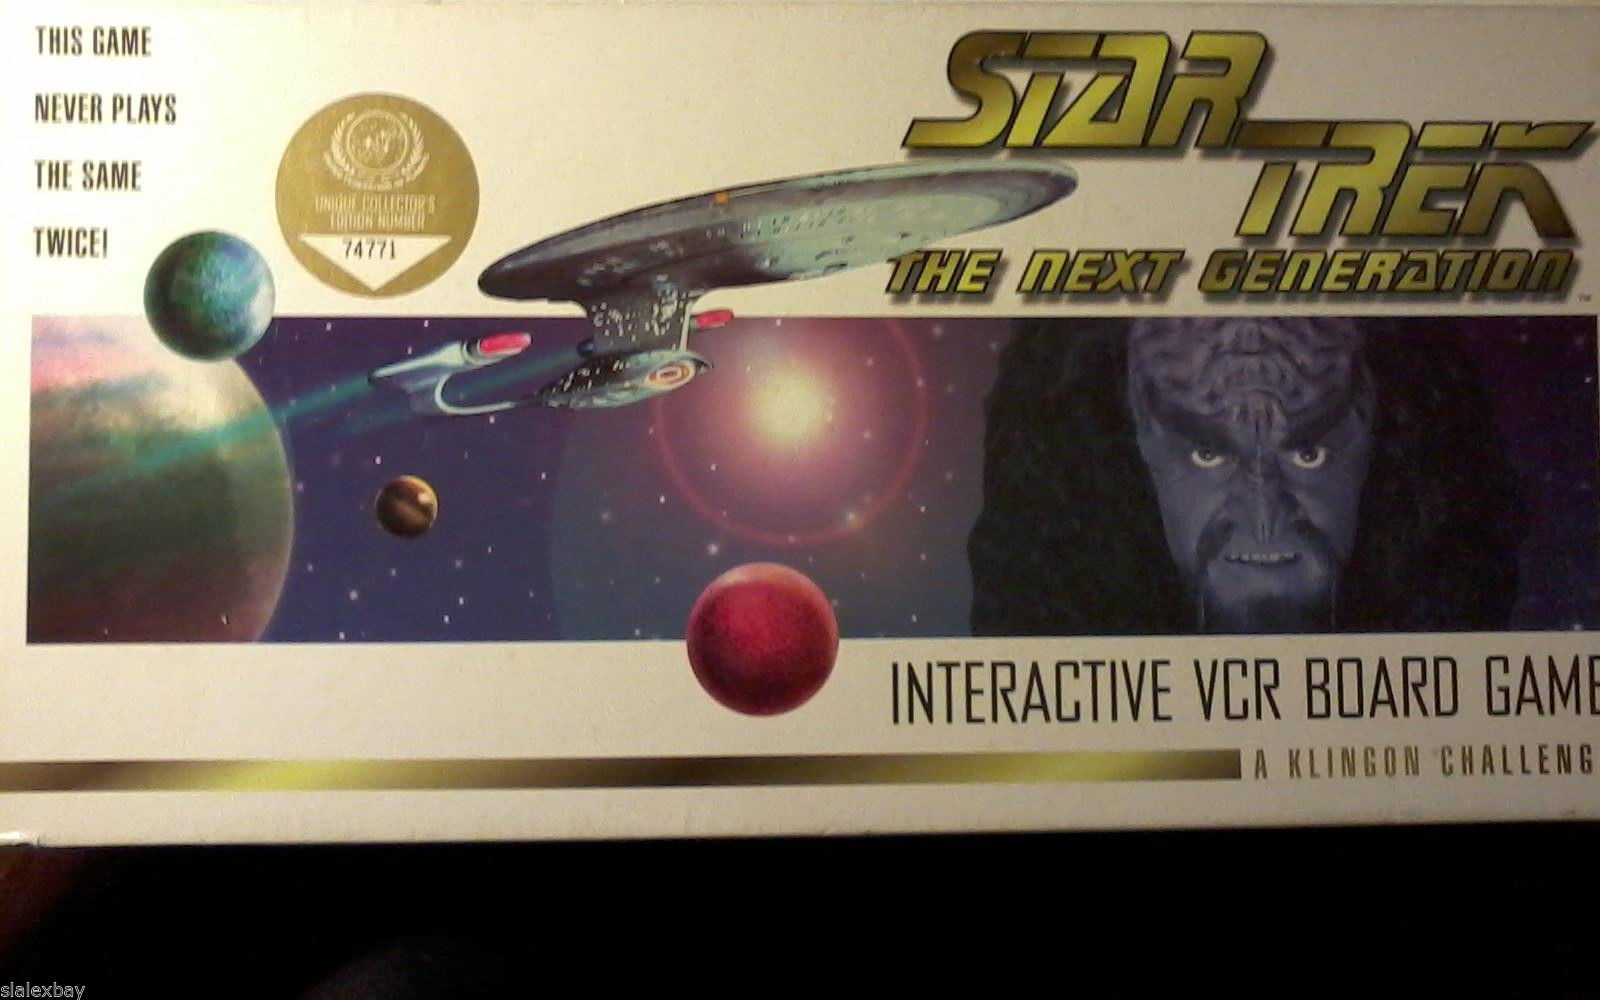 Star Trek The Next Generation VCR Board Game Klingon Challenge Collector's Editi